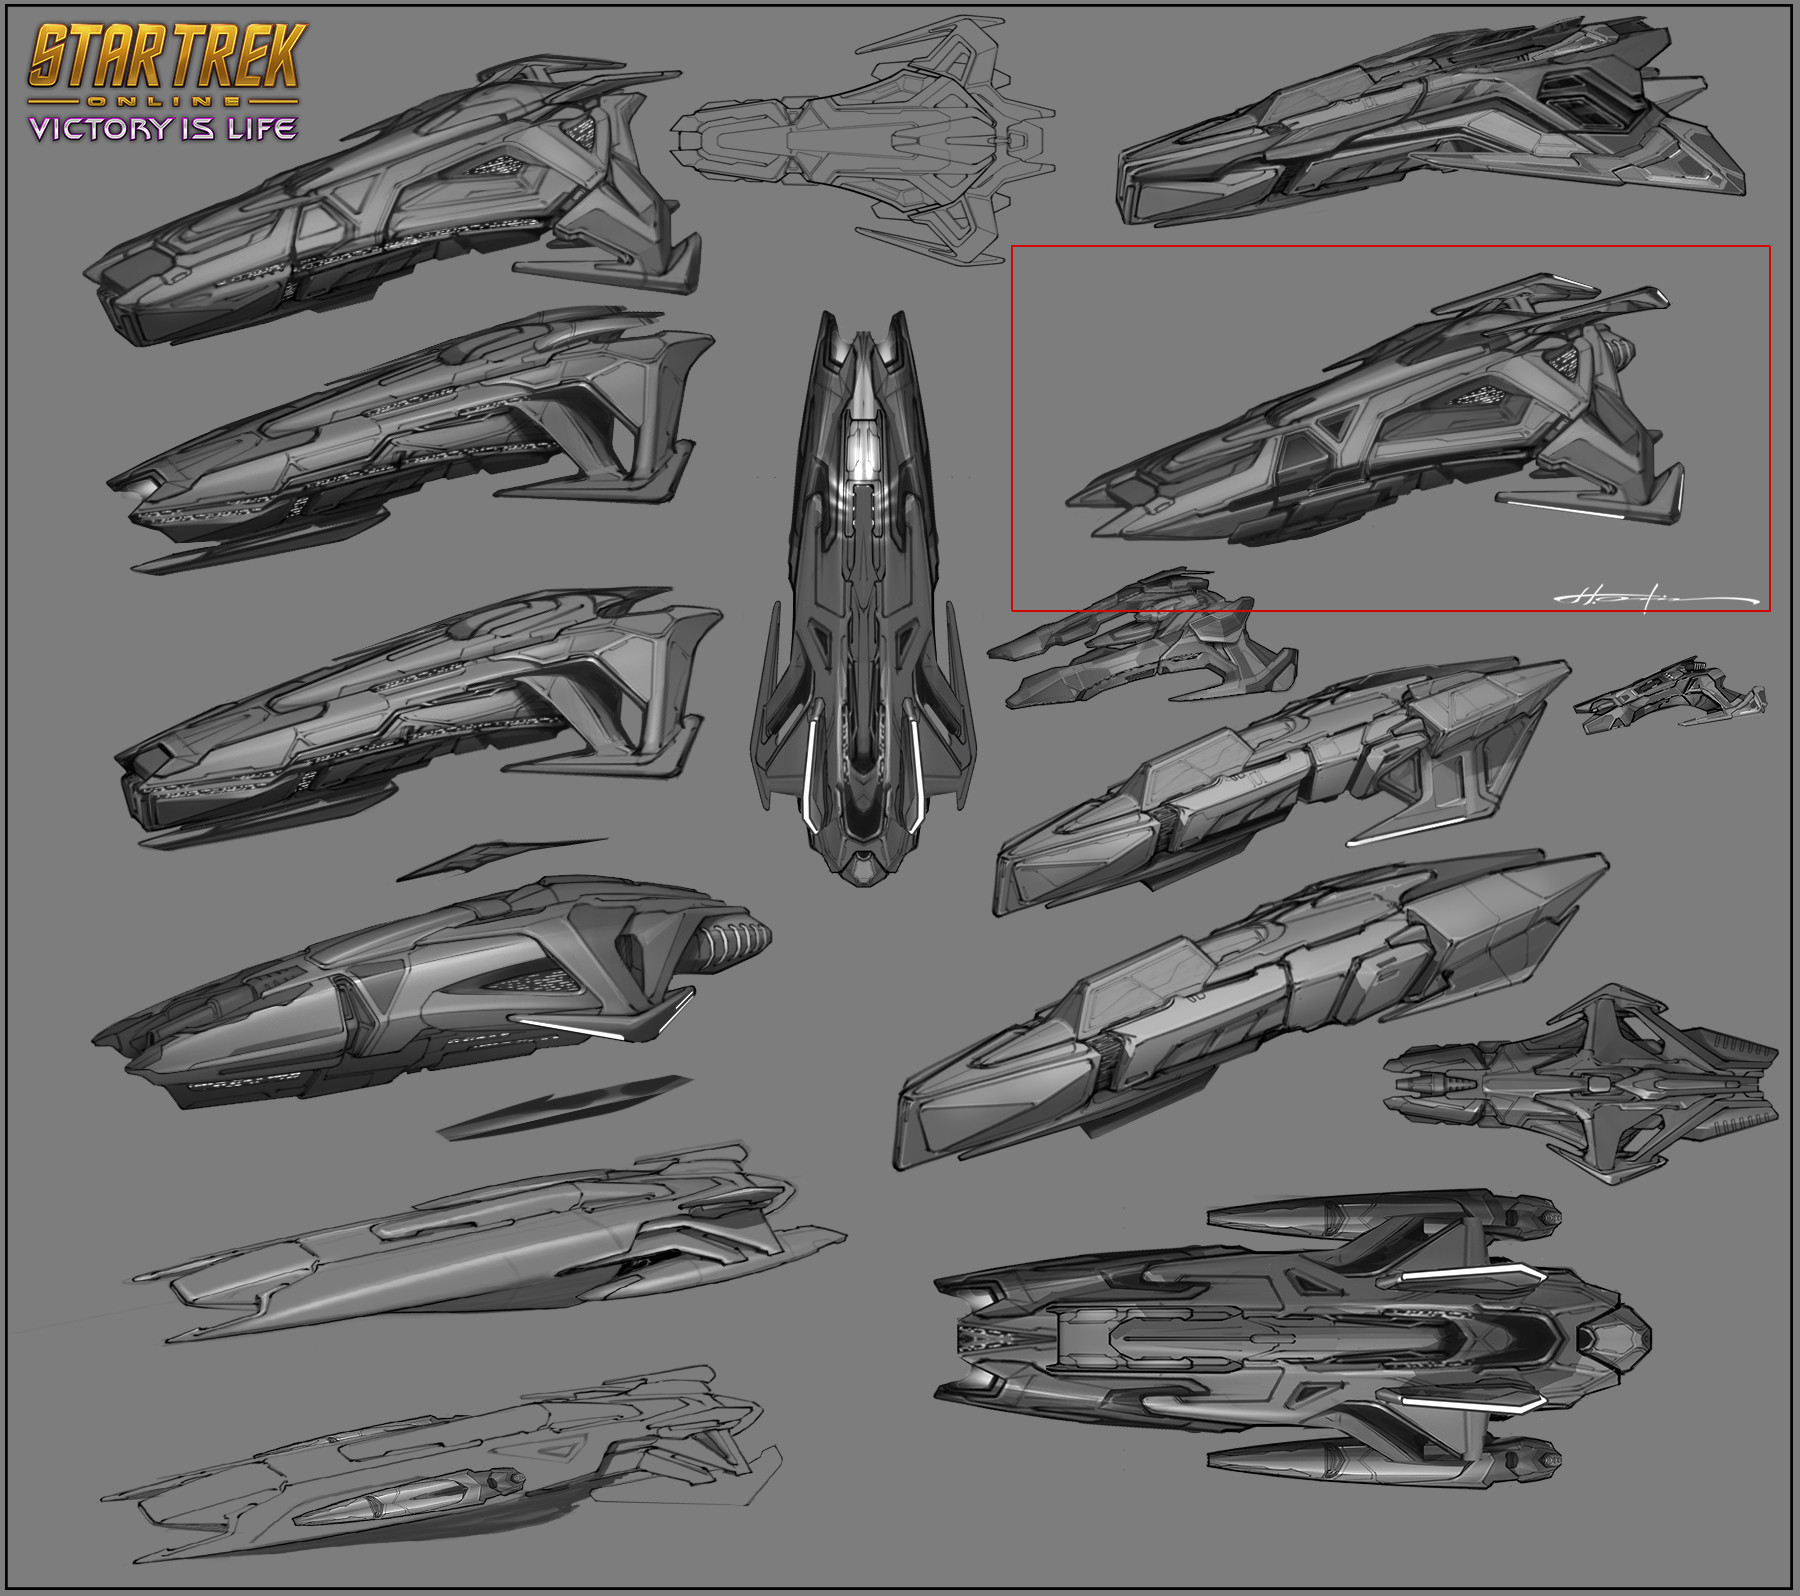 Here you can see some early style variations. I try to keep the sketches angles similar so I can exchange parts between them. Weapons, armors and other ships can be kit-bashed from here thus keeping the style consistent across the board.